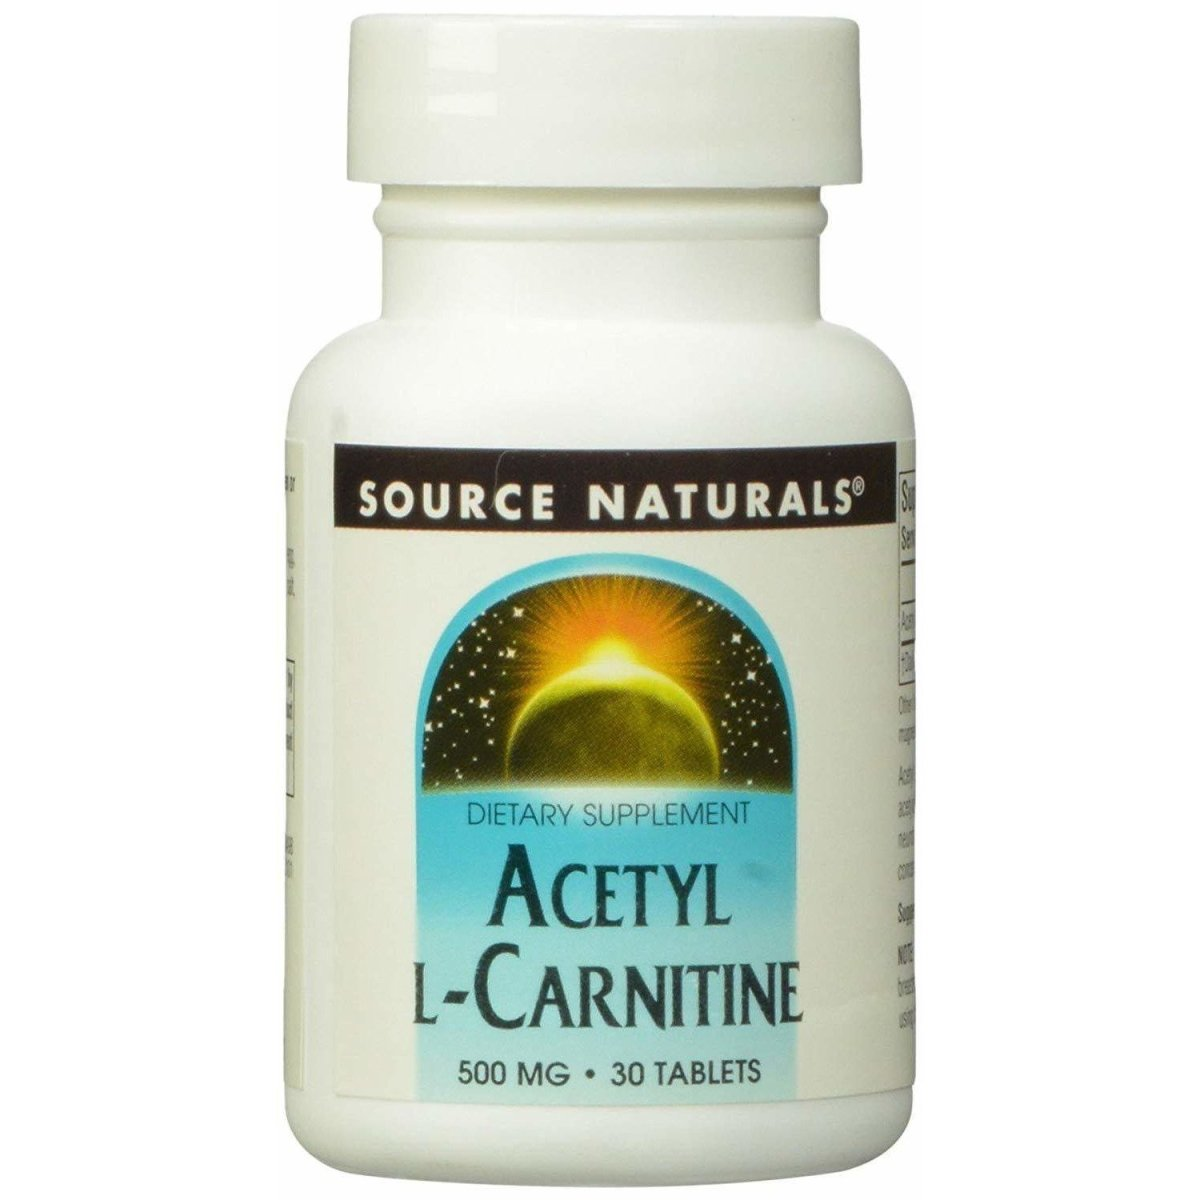 Source Naturals Acetyl L-Carnitine 500mg, 30 Tablets